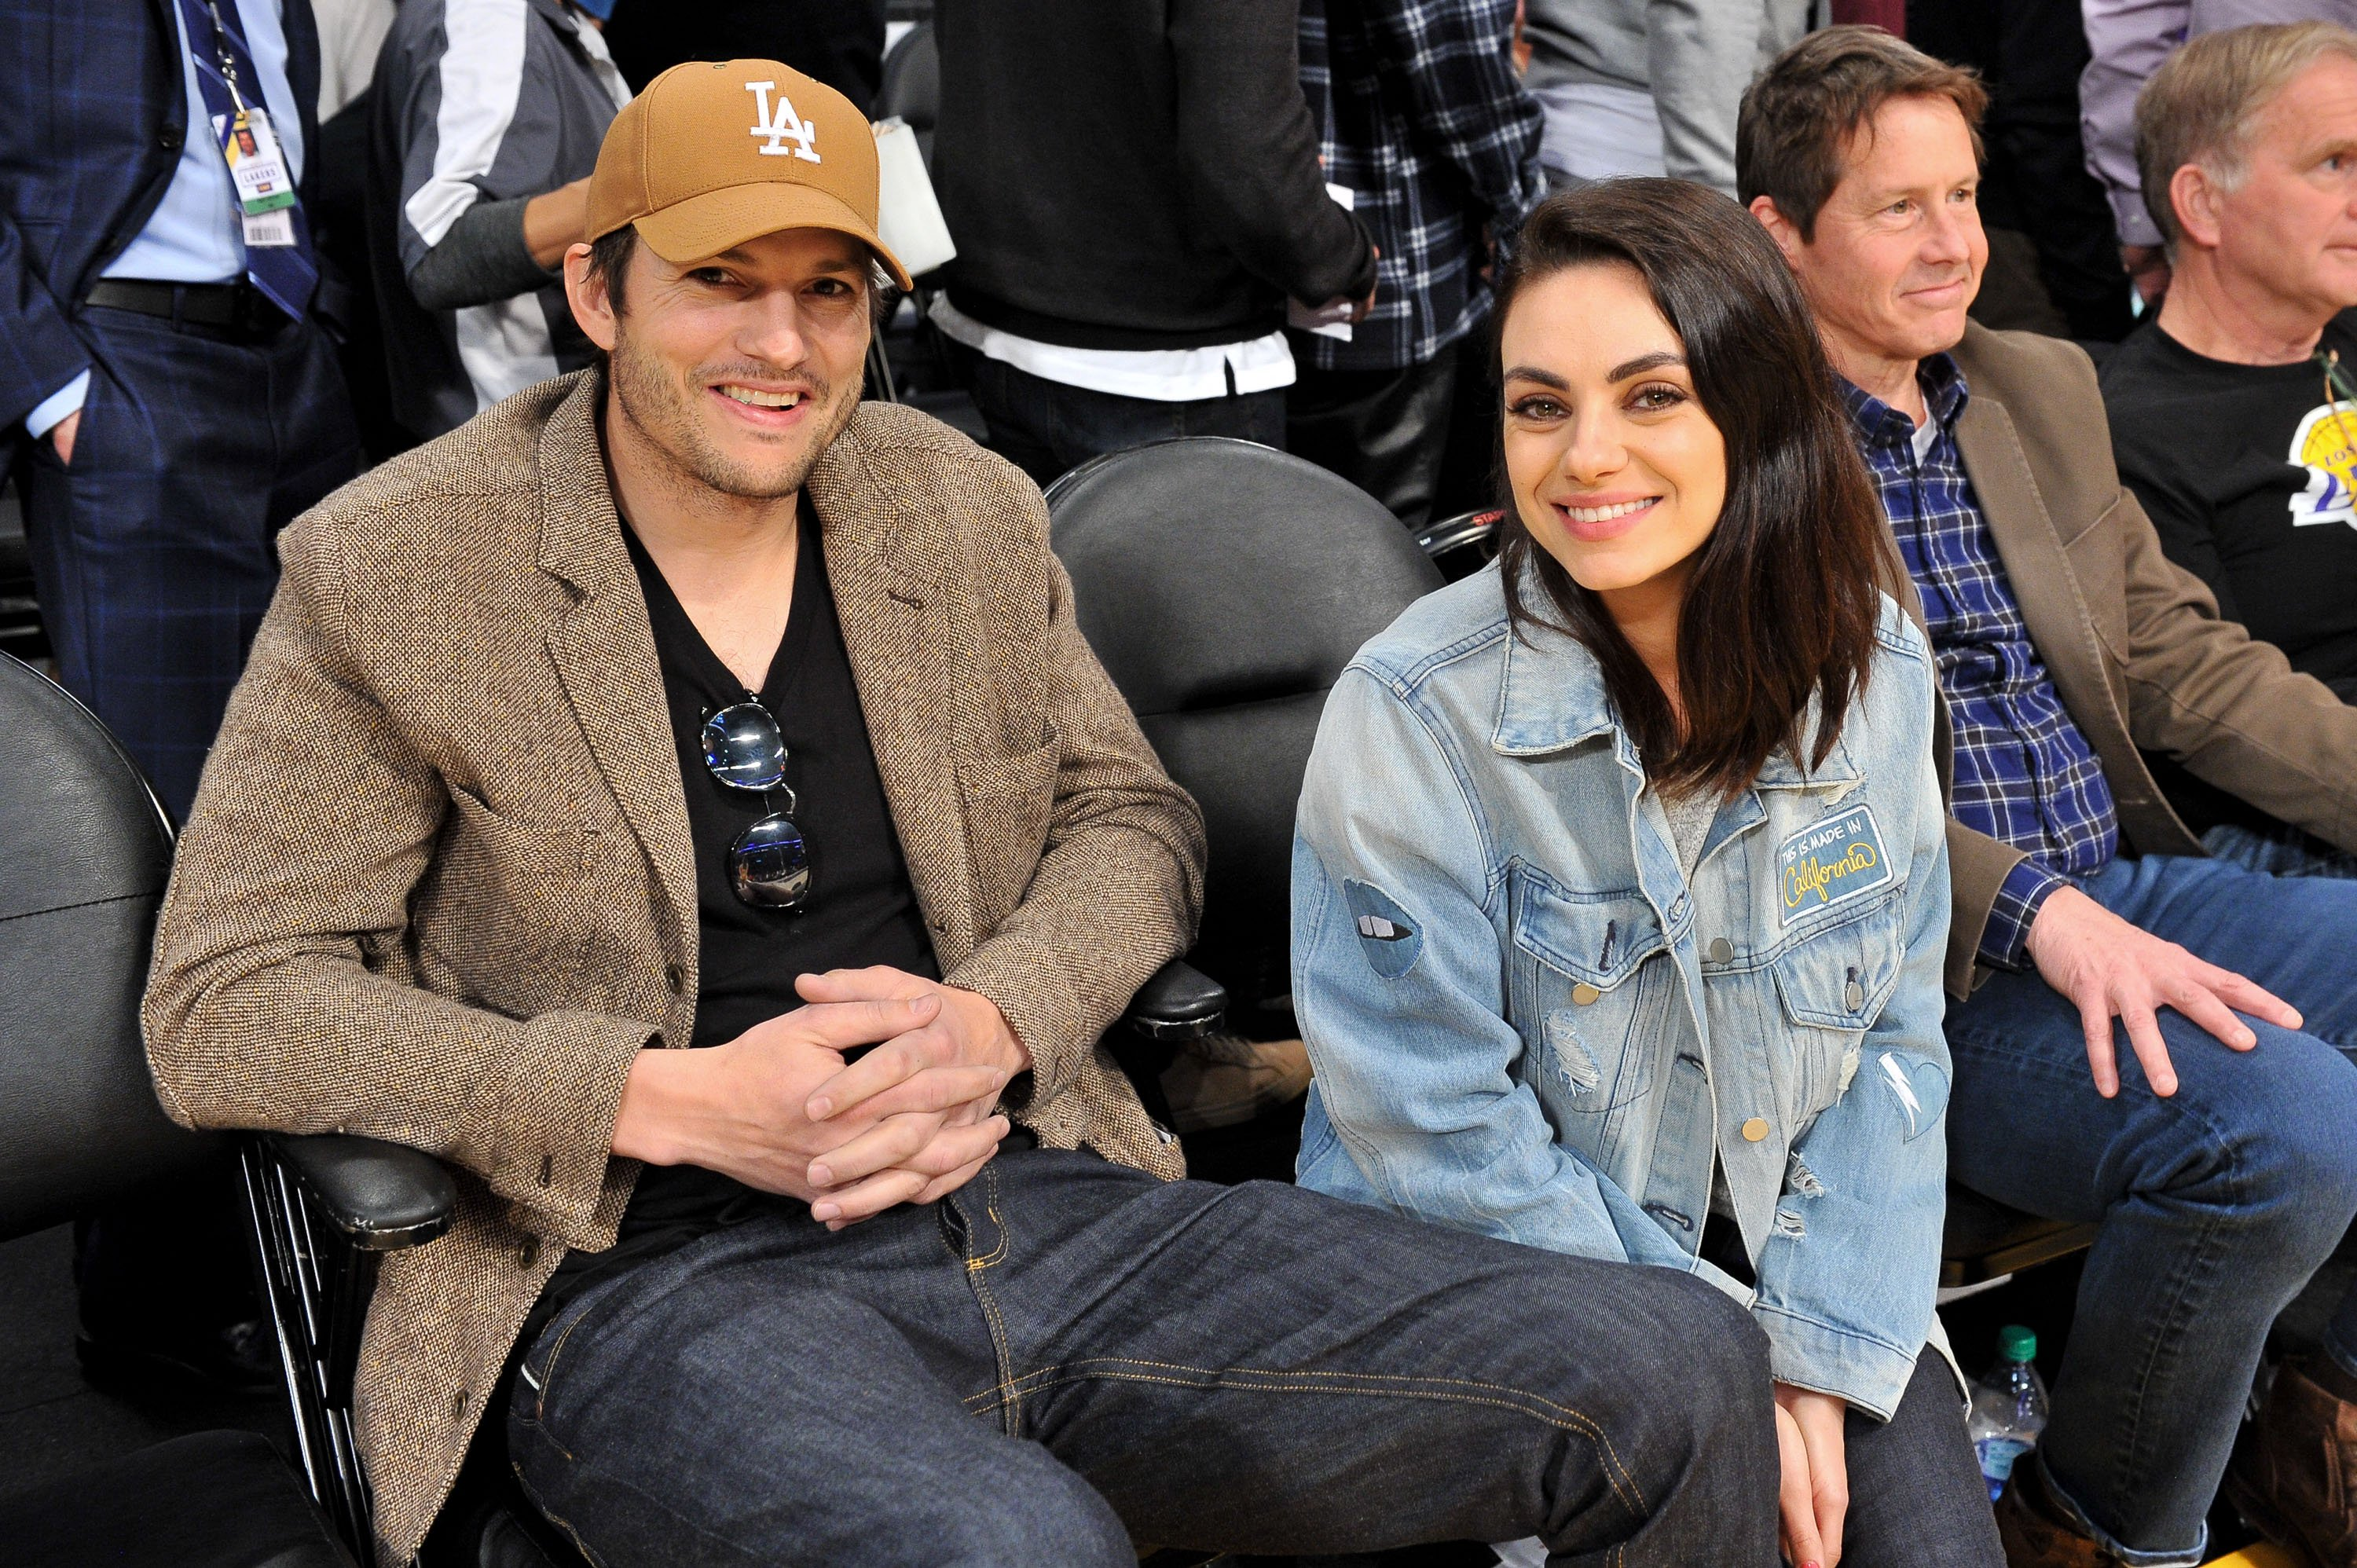 Ashton Kutcher and Mila Kunis smile for the camera at an L.A. Lakers game, January, 2019. | Photo: Getty Images.